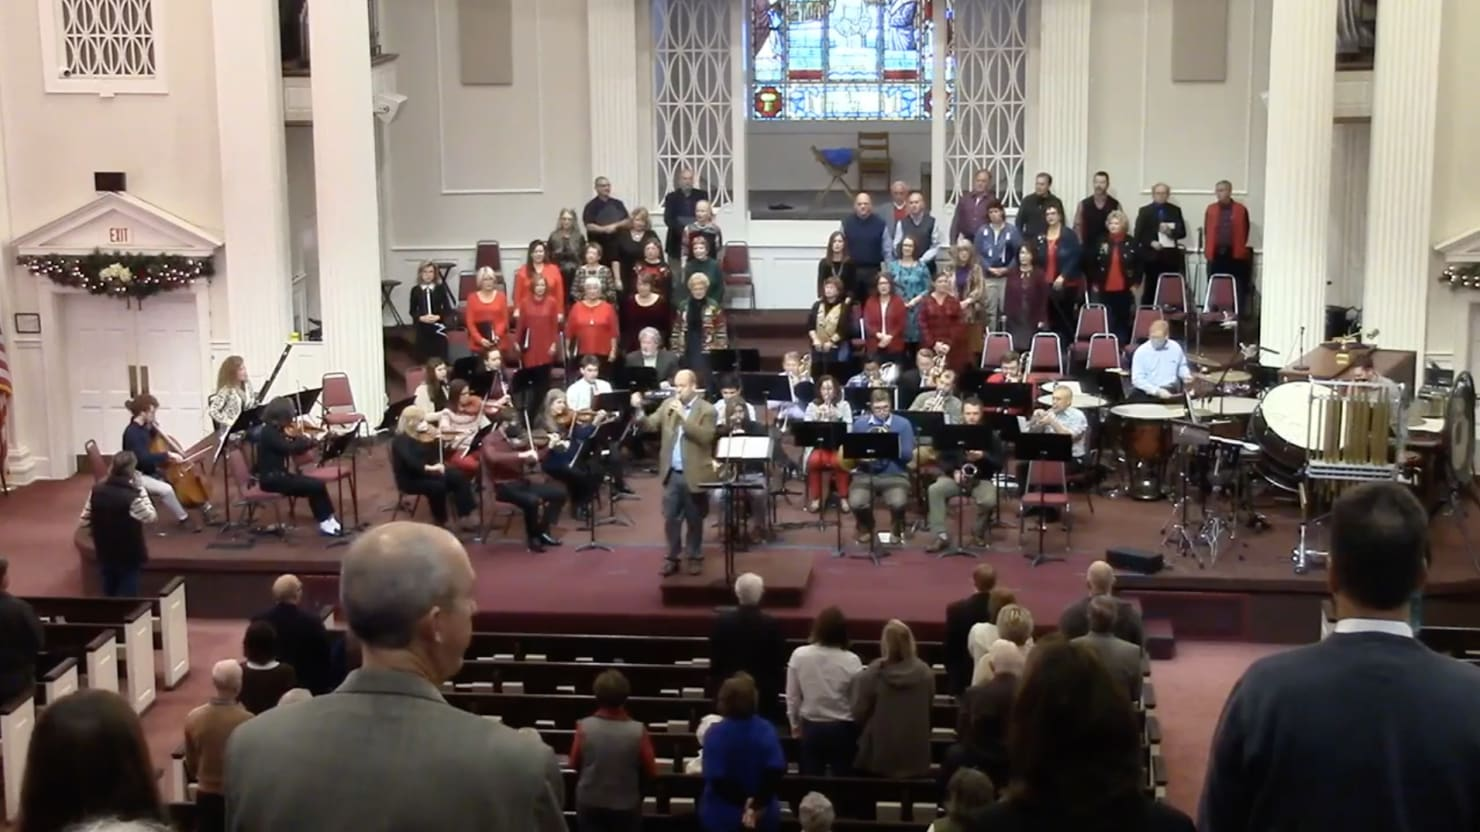 75 People and Counting Test Positive for COVID After North Carolina Church's Christmas Musical